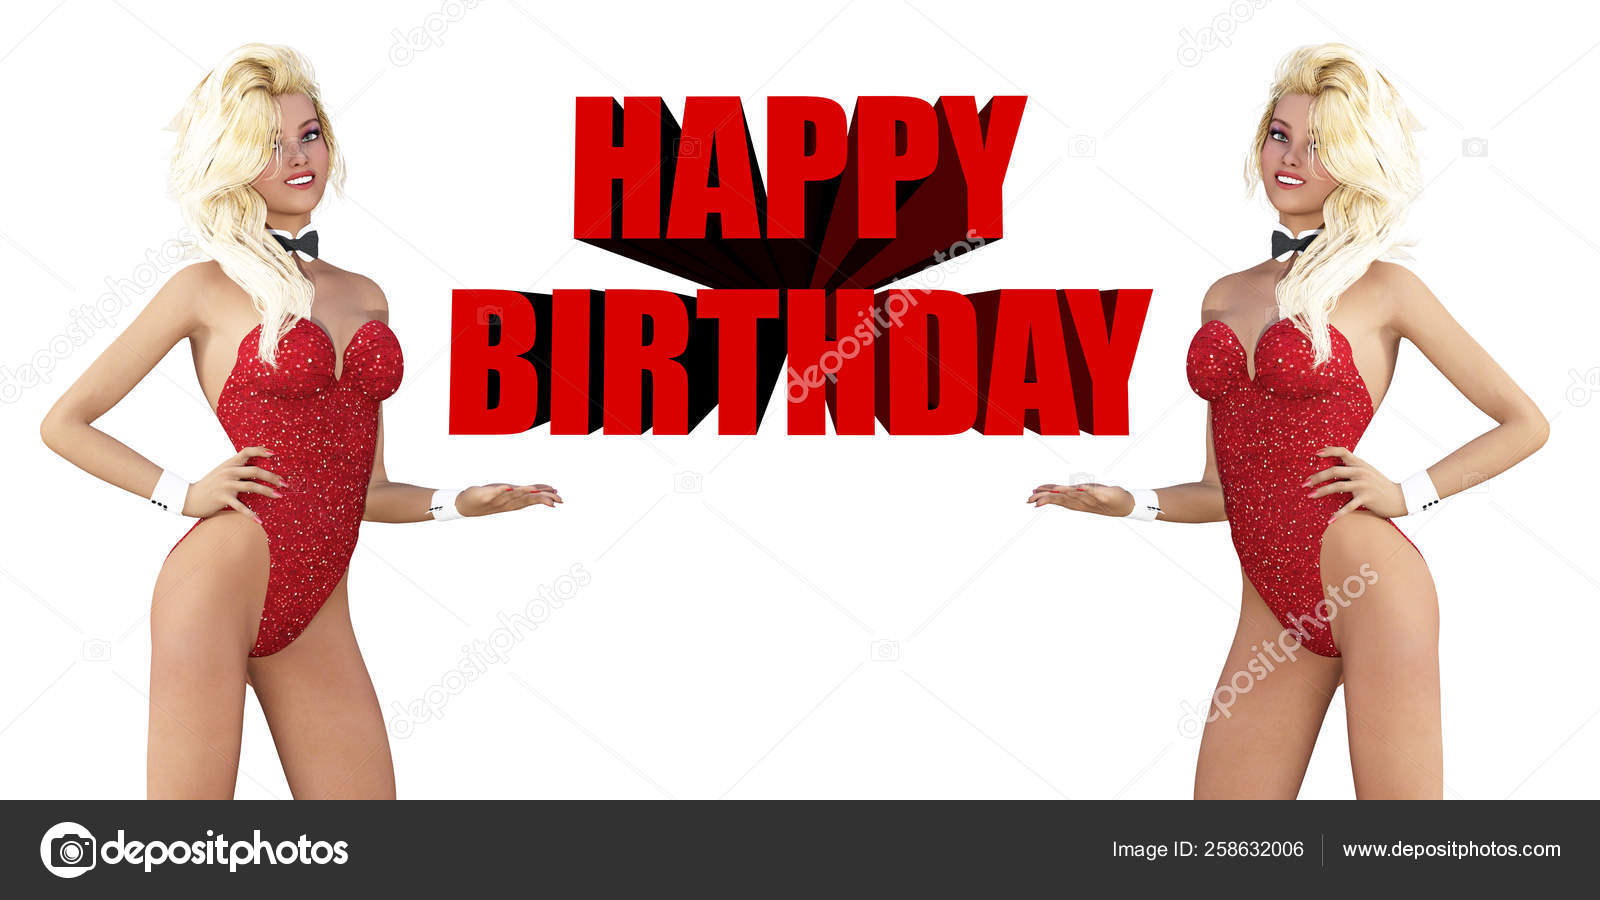 Happy Birthday Sexy Ladies Smiling You Stock Photo Image By C Yayimages 258632006